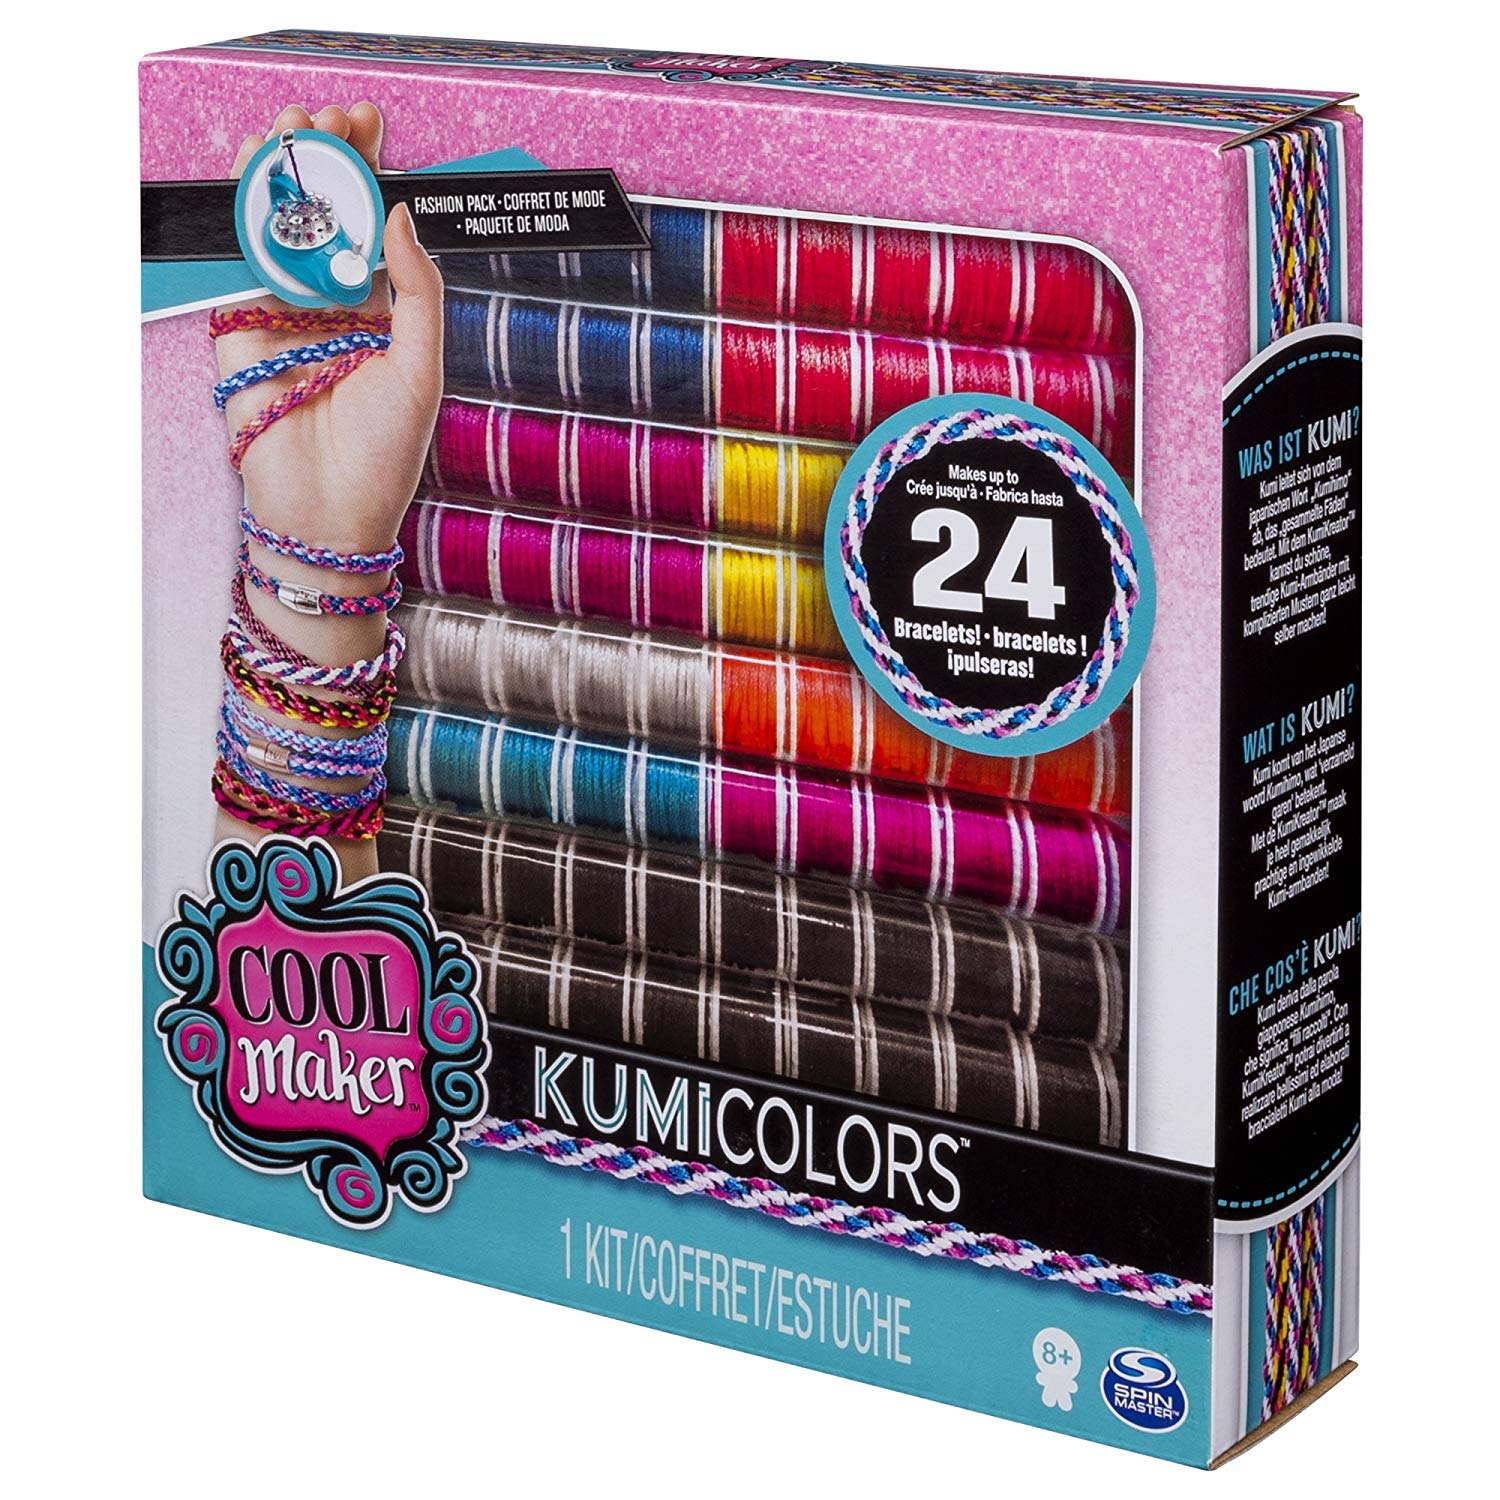 Amazon.com: Cool Maker - KumiColors Fantasy & Neons Fashion ...